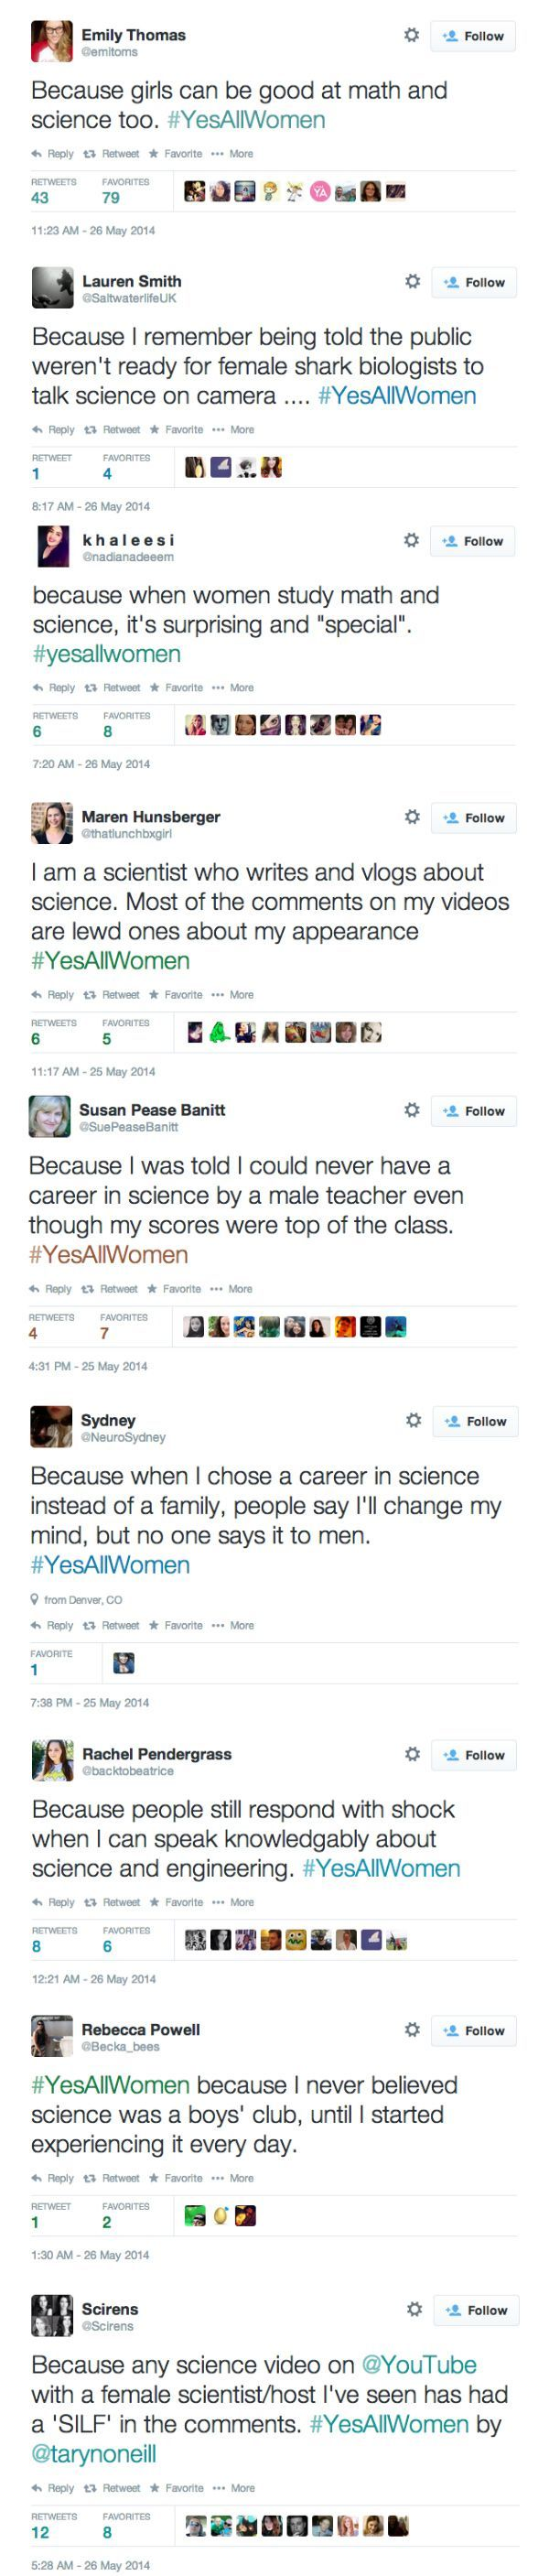 Girls in math and science are rare and special because woman usually take jobs in social sciences and liberal arts. They don't usually get STEM jobs. They are shocked because woman usually chose other things.